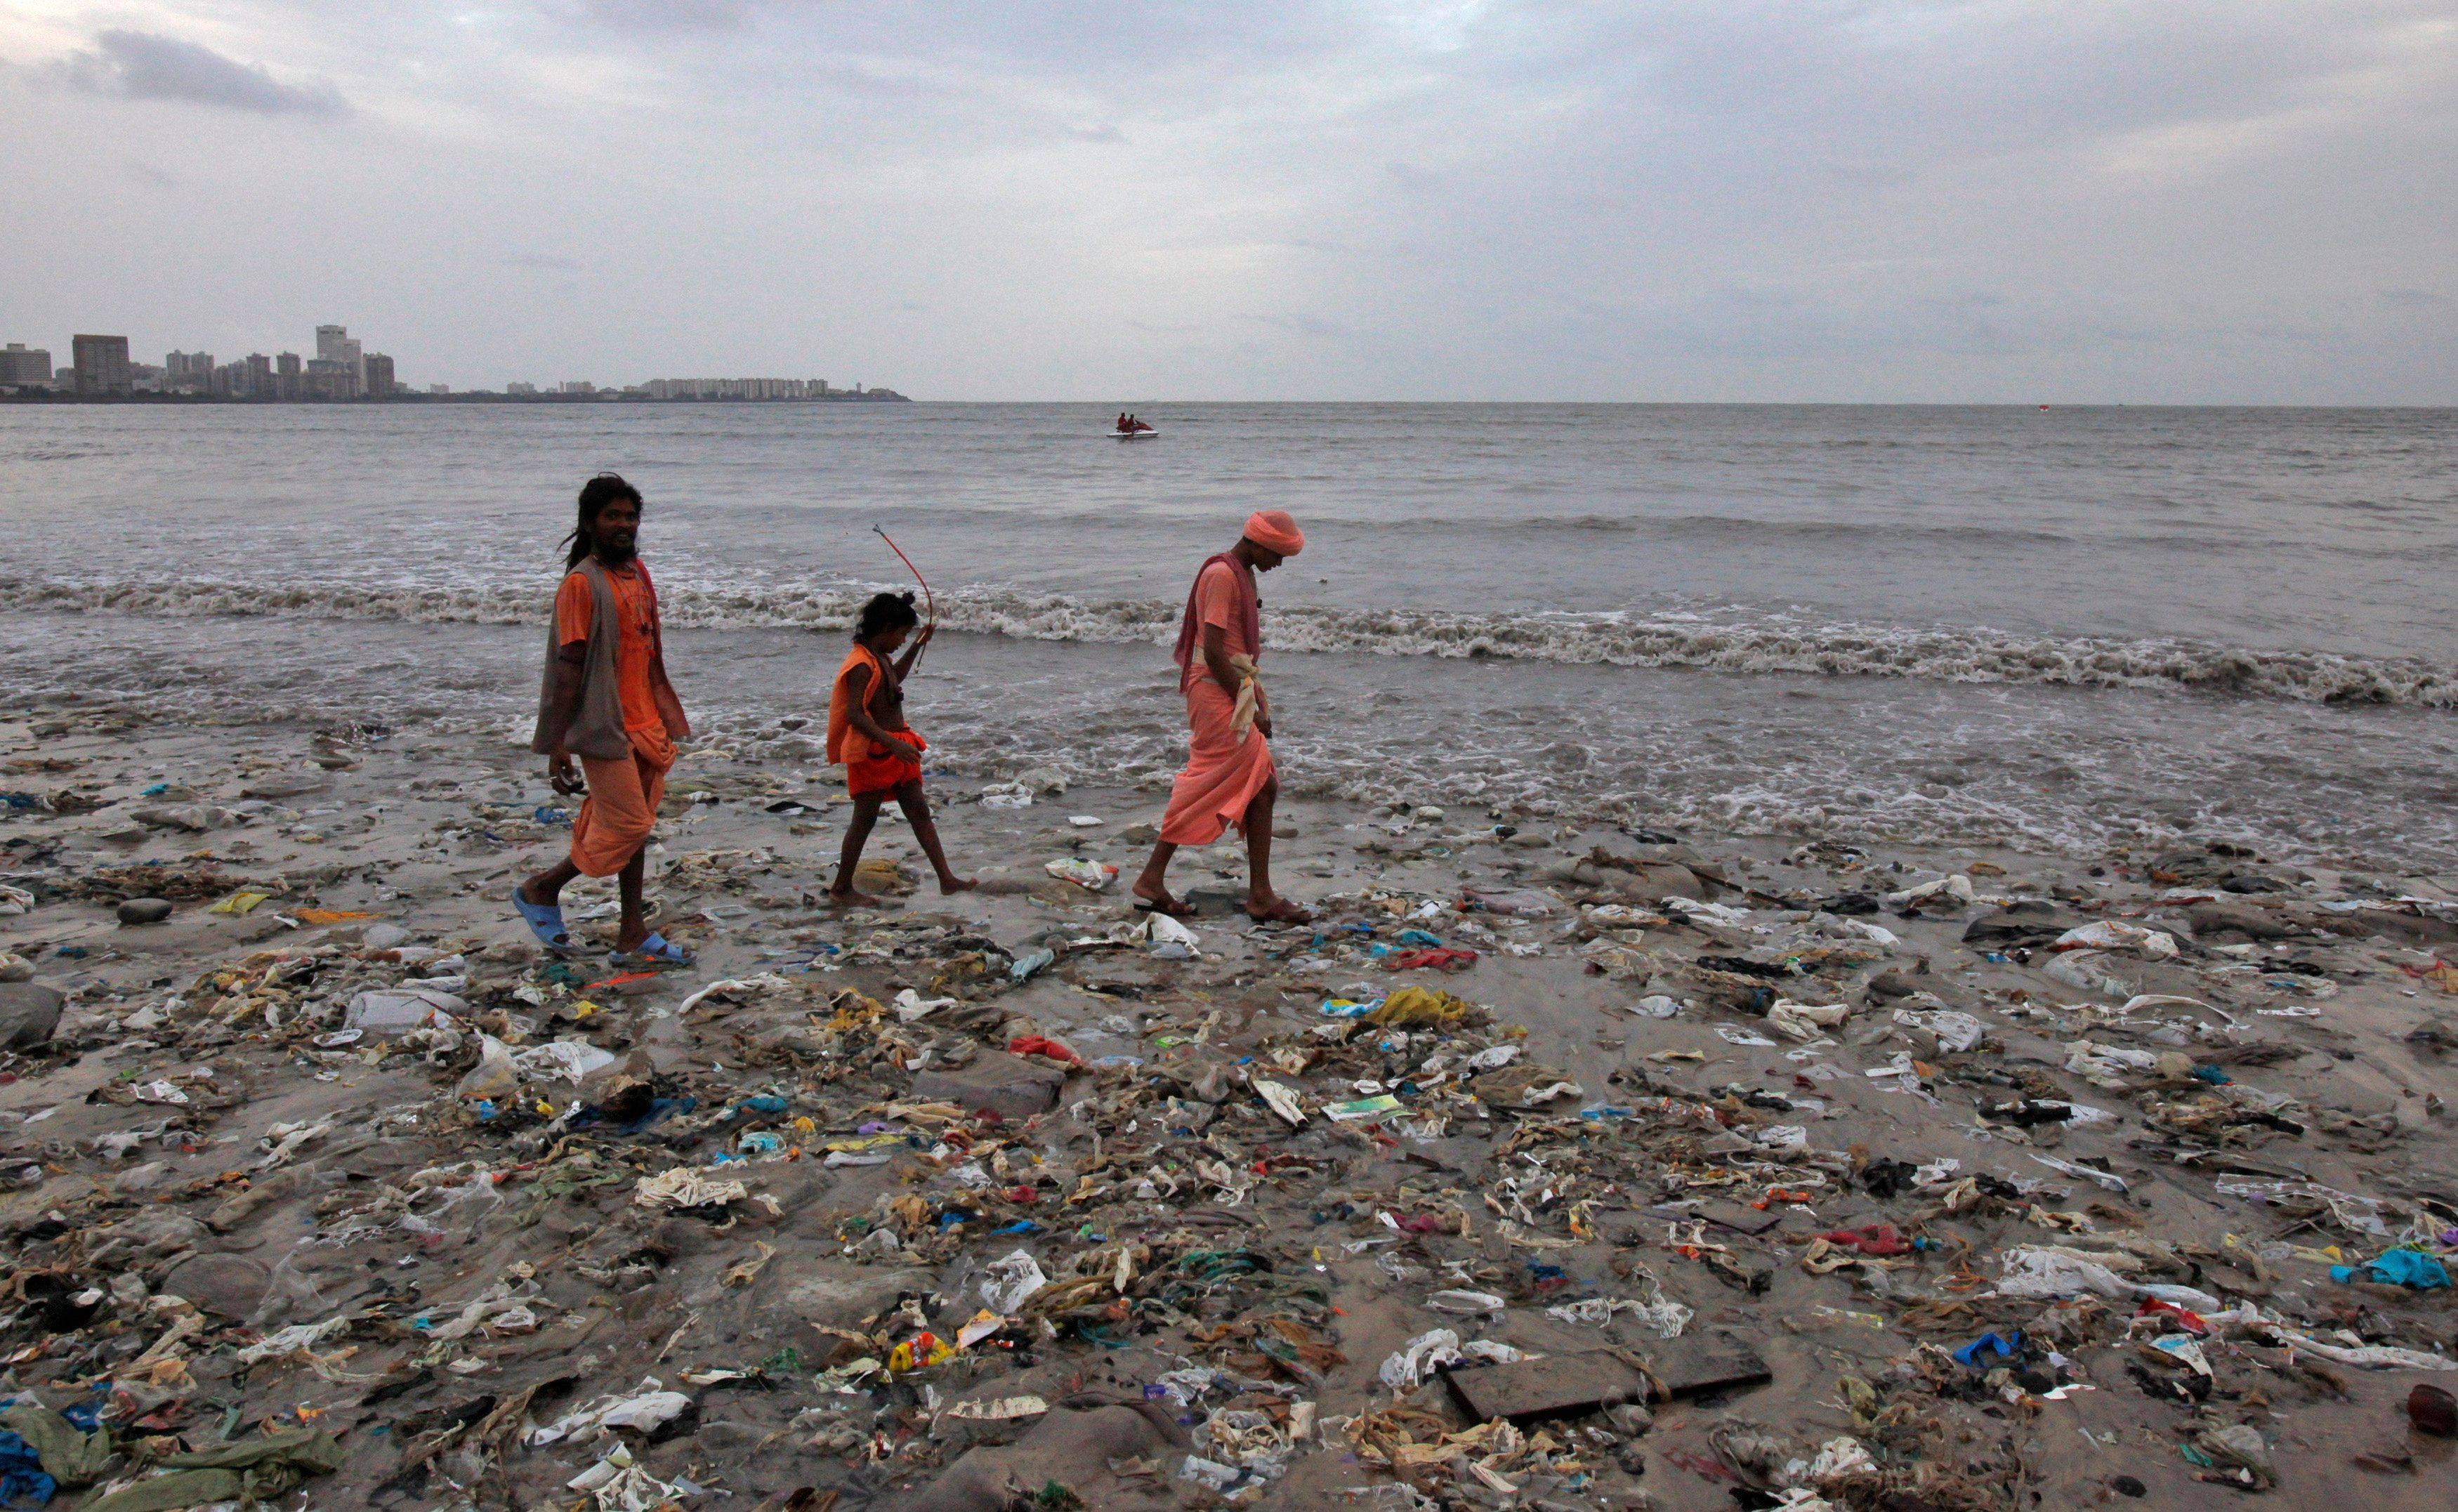 Ram Singh (L) and his relatives, dressed in traditional Hindu saffron-coloured clothes walk on a garbage-strewn beach against the backdrop of monsoon clouds on World Environment Day in Mumbai, June 5, 2012. According to the United Nations Environment Programme website, World Environment Day is celebrated annually on June 5 to raise global awareness and motivate action for environmental protection. REUTERS/Vivek Prakash (INDIA - Tags: ENVIRONMENT SOCIETY)